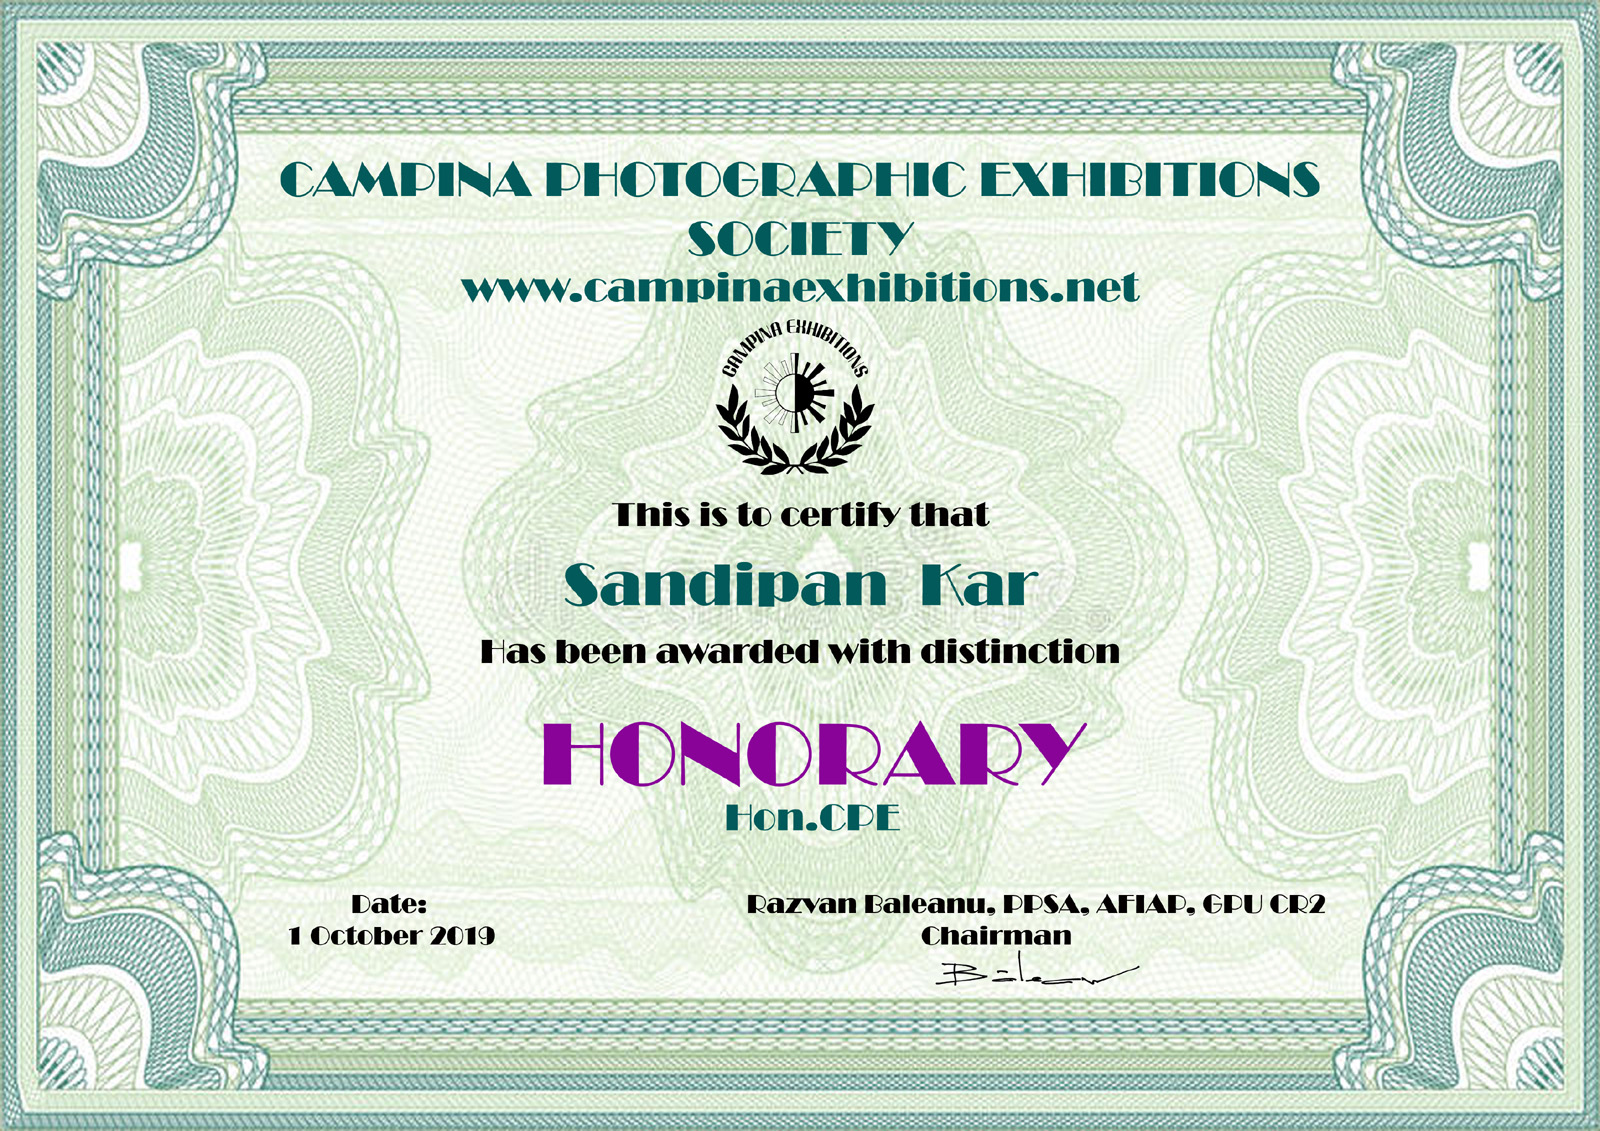 Sandipan Kar - HONORARY - Hon.CPE - Campina Photographic Exhibitions Society